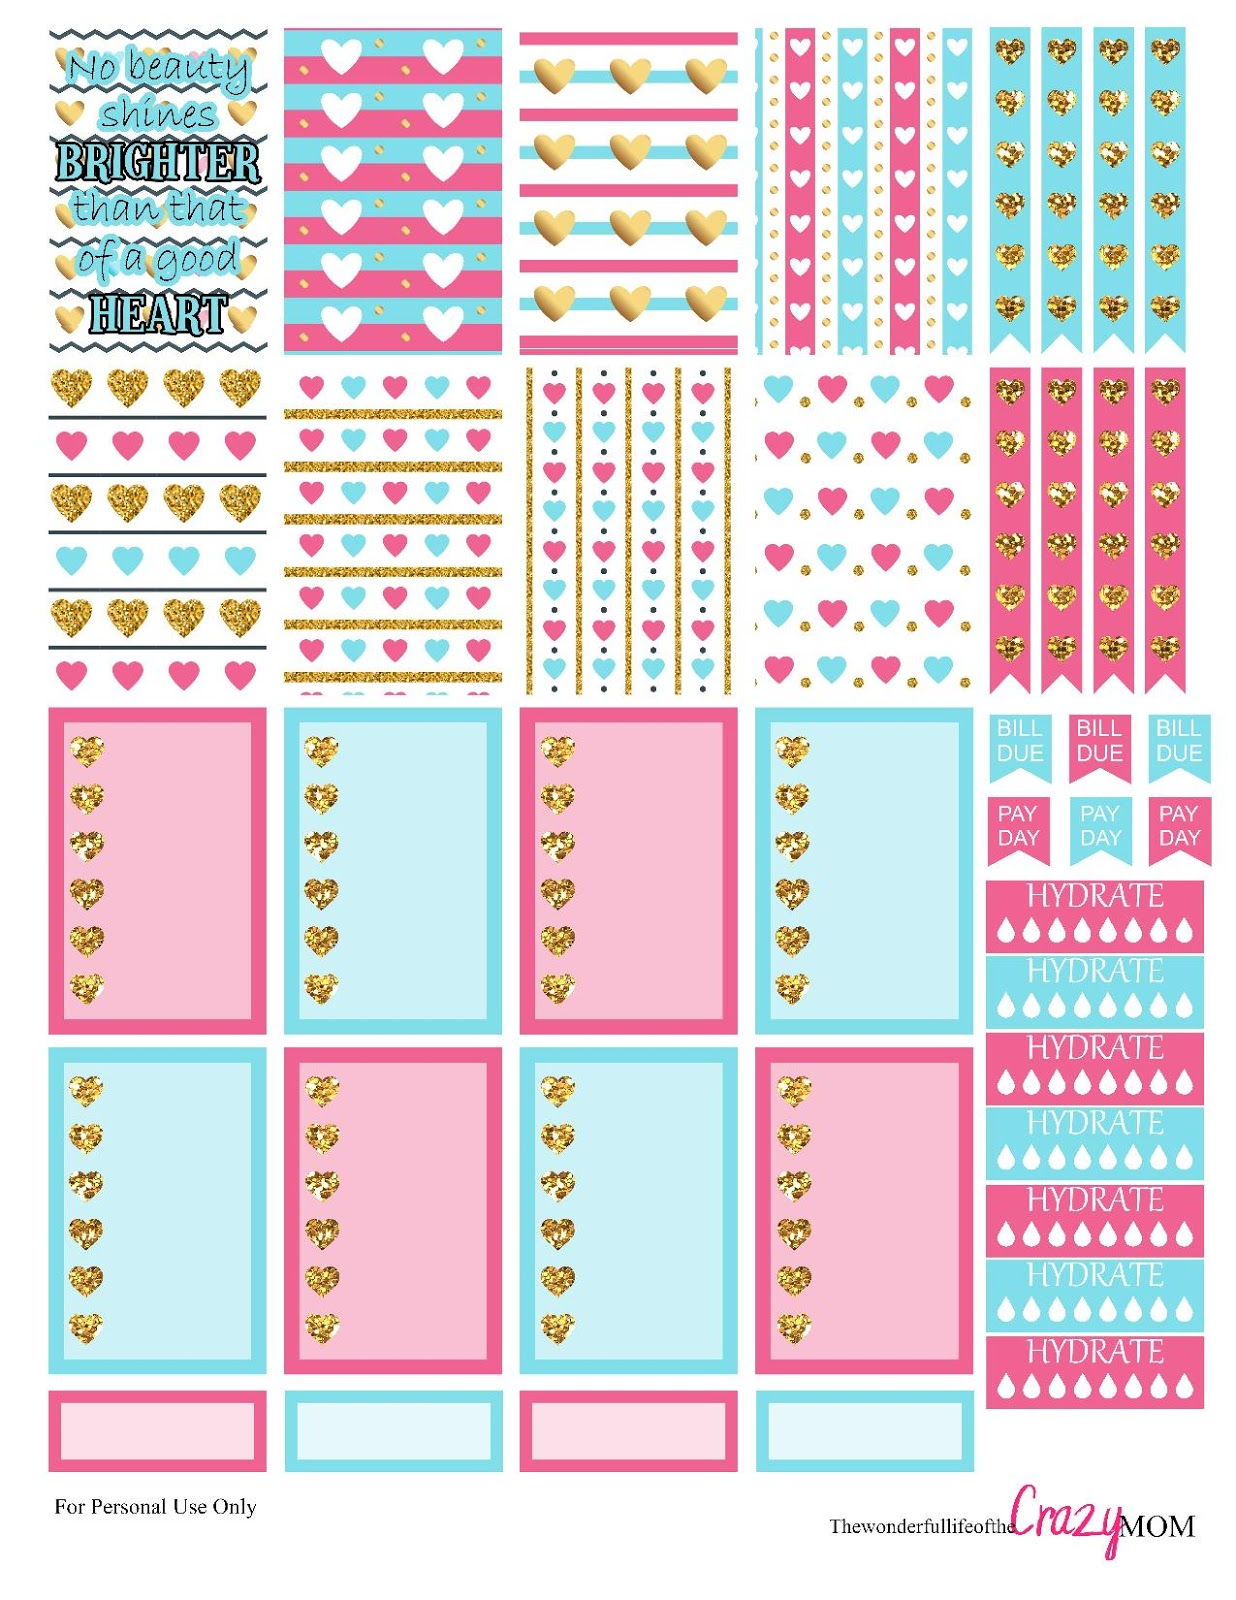 This is a picture of Dynamic Free Happy Planner Printables